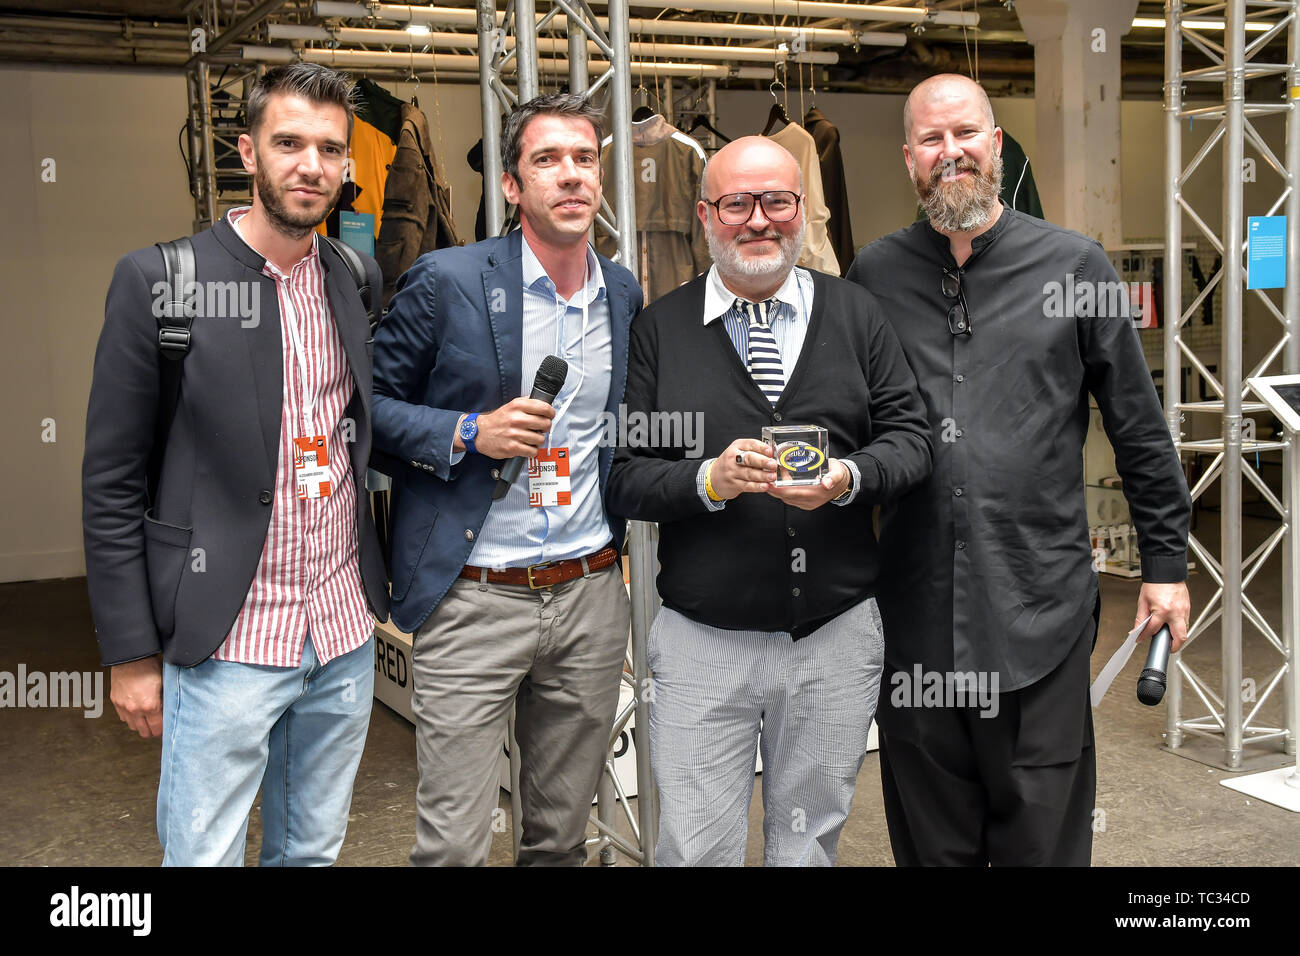 London, UK. 05th June, 2019. Aki Choklat is the winner of International Accessories Award of CCS - Detroit at the Graduate Fashion Week 2019 - Final Day, on 5 June 2019, Old Truman Brewery, London, UK. Credit: Picture Capital/Alamy Live News - Stock Image